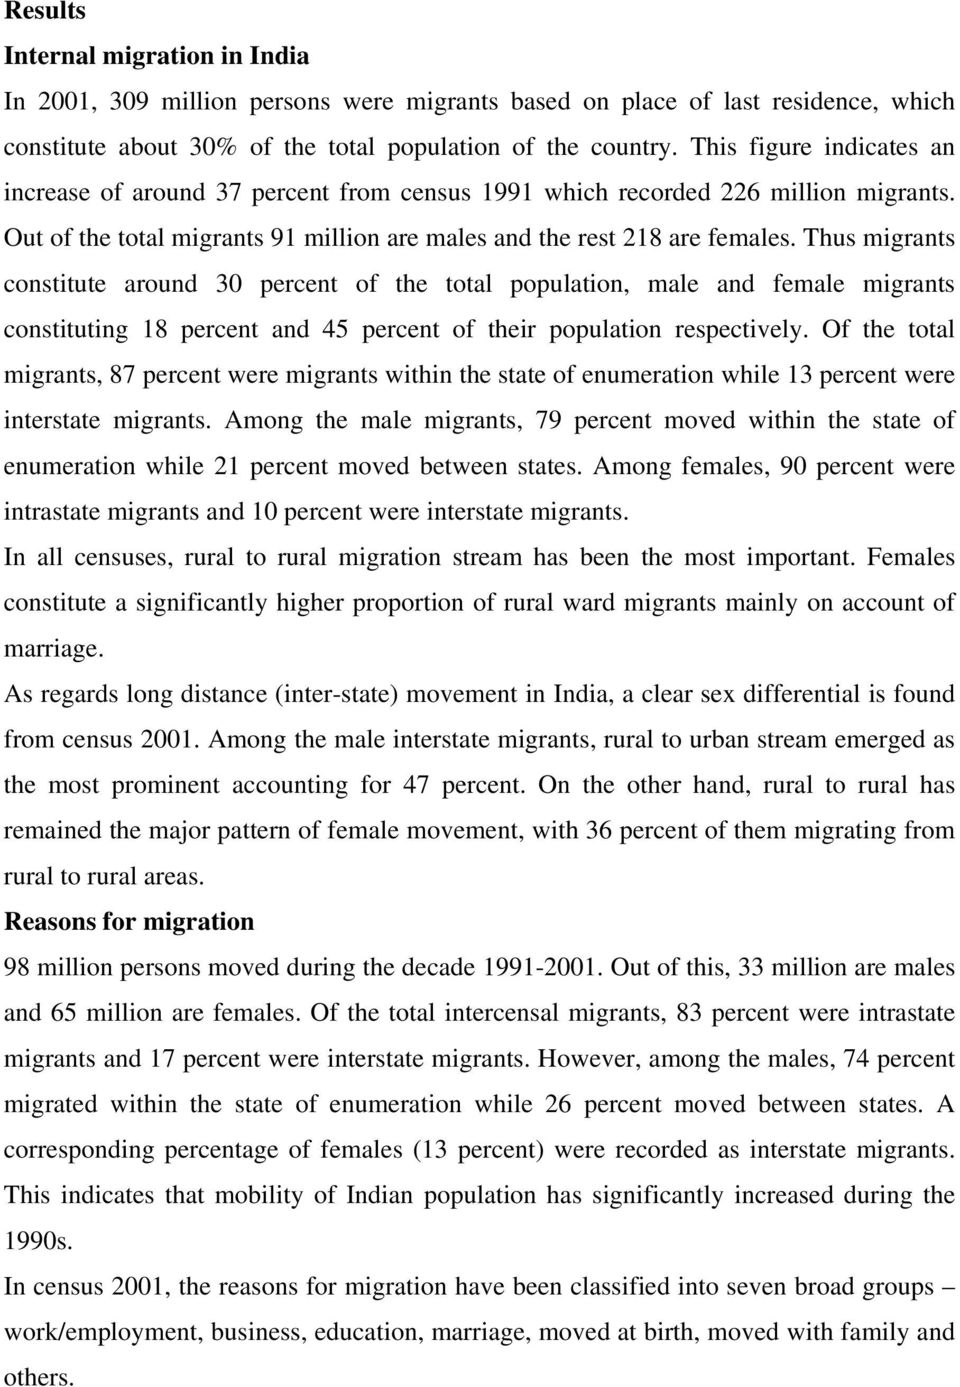 Thus migrants constitute around 30 percent of the total population, male and female migrants constituting 18 percent and 45 percent of their population respectively.